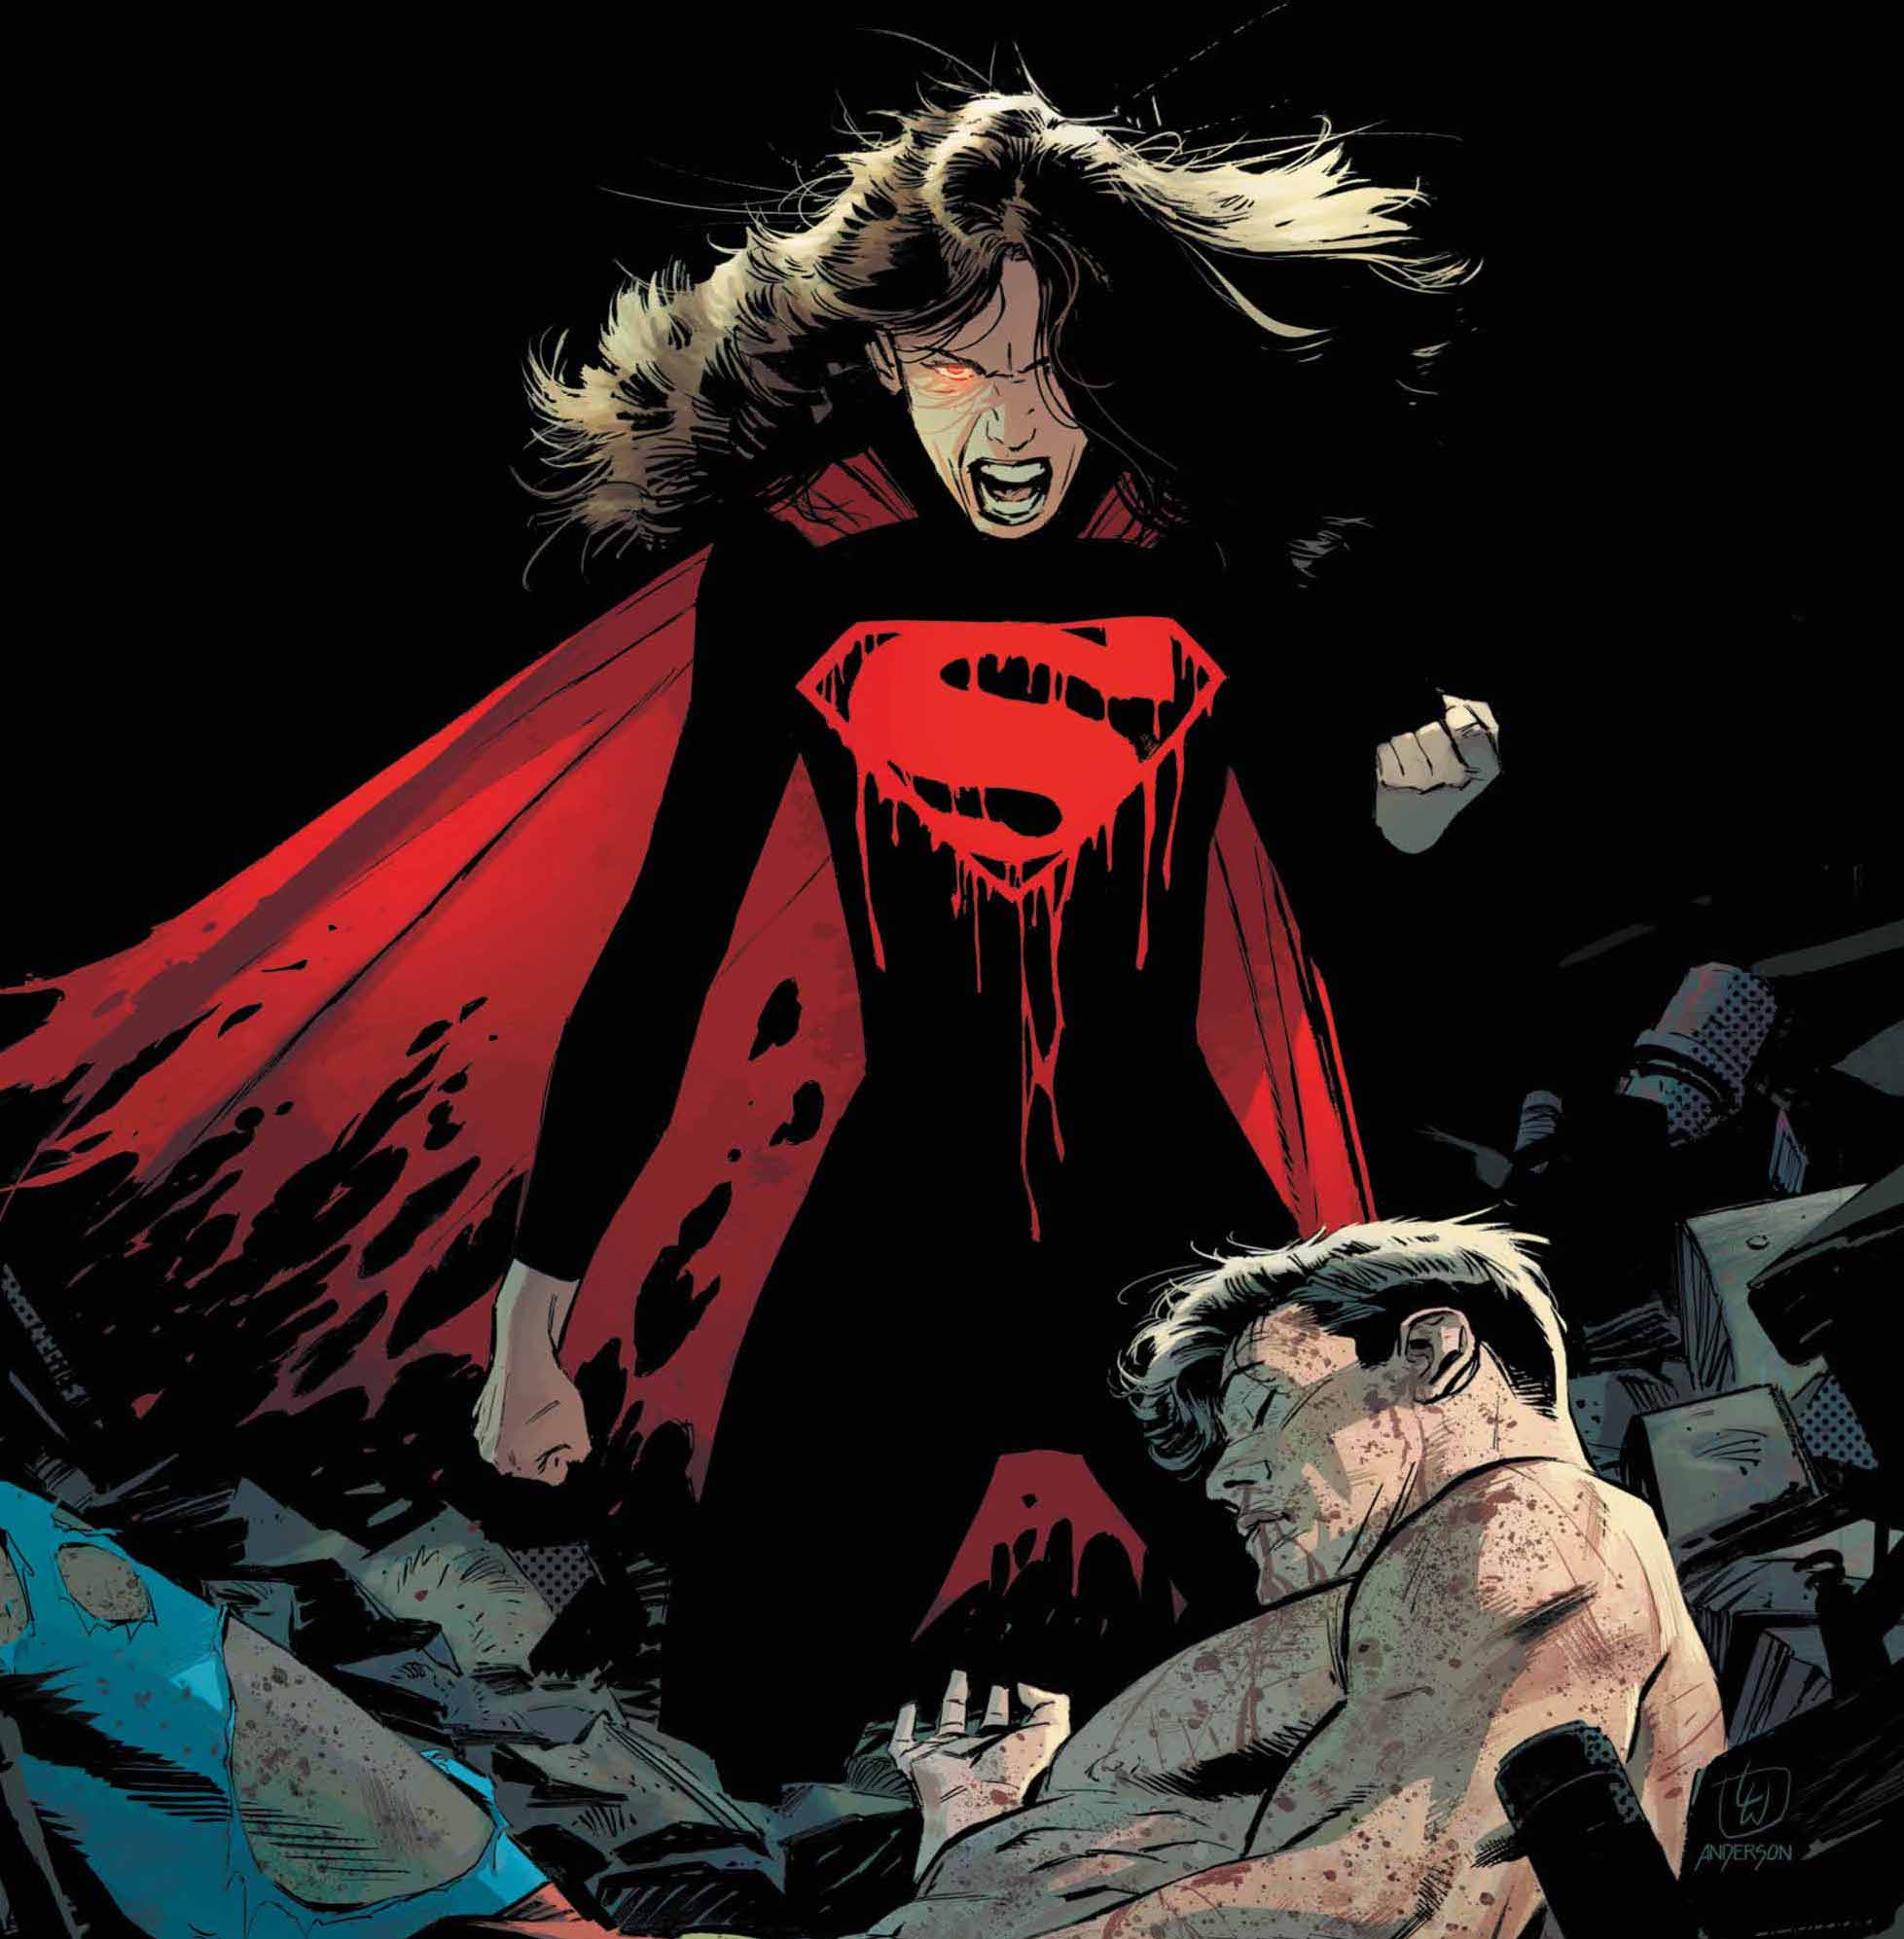 Tales from the Dark Multiverse: The Death of Superman #1 Review